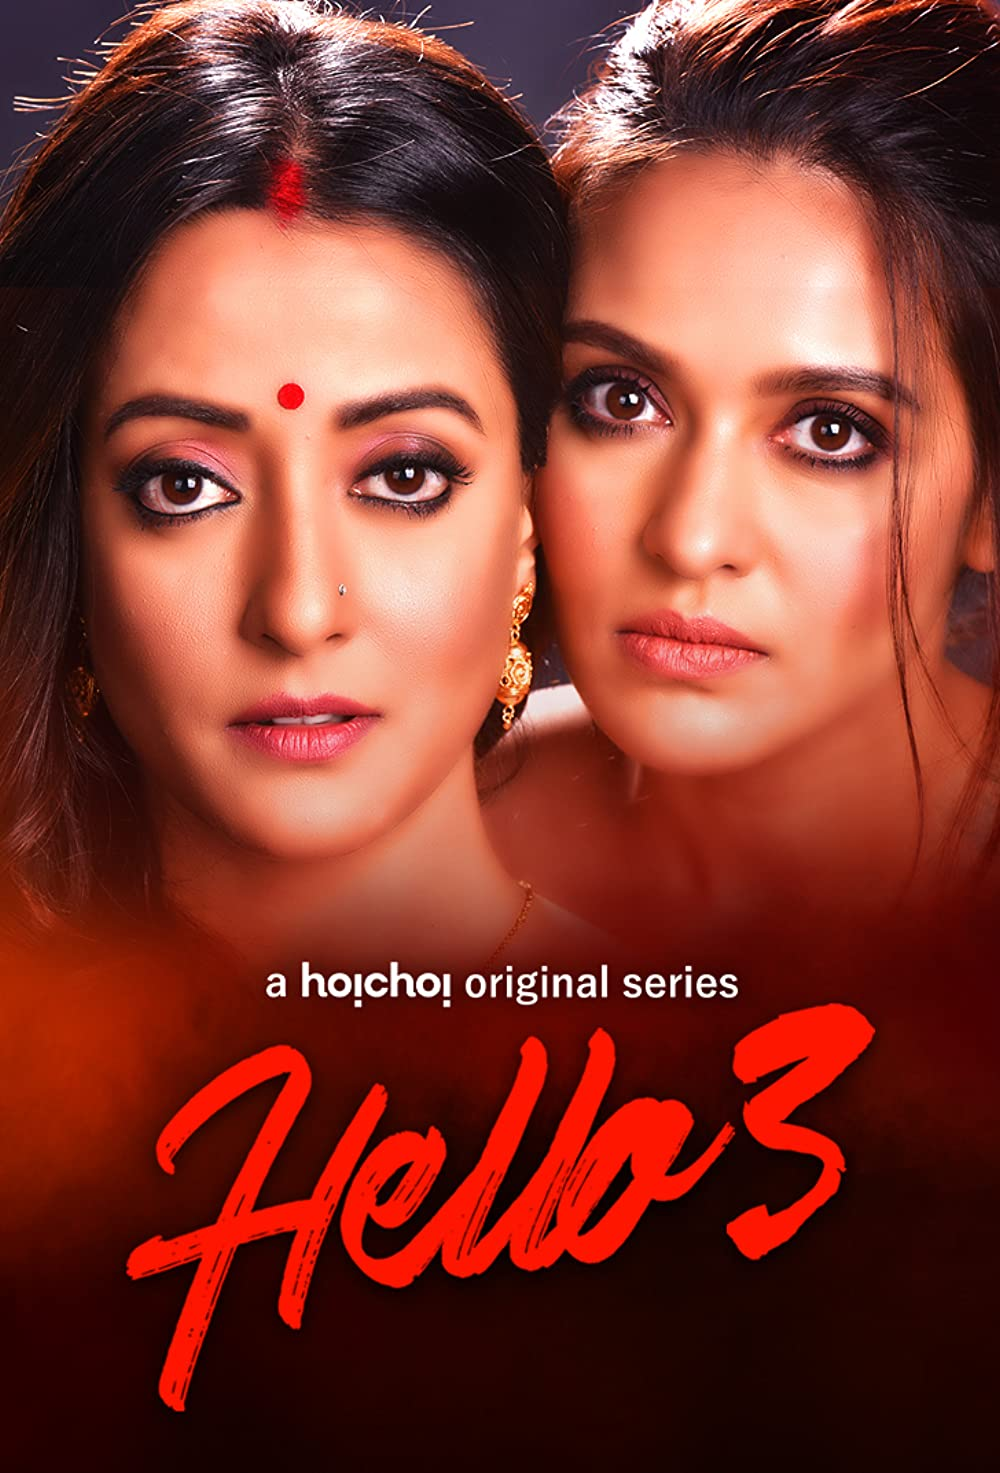 Hello 3 2021 S03 Hoichoi Originals Bengali Web Series 720p HDRip 900MB AAC